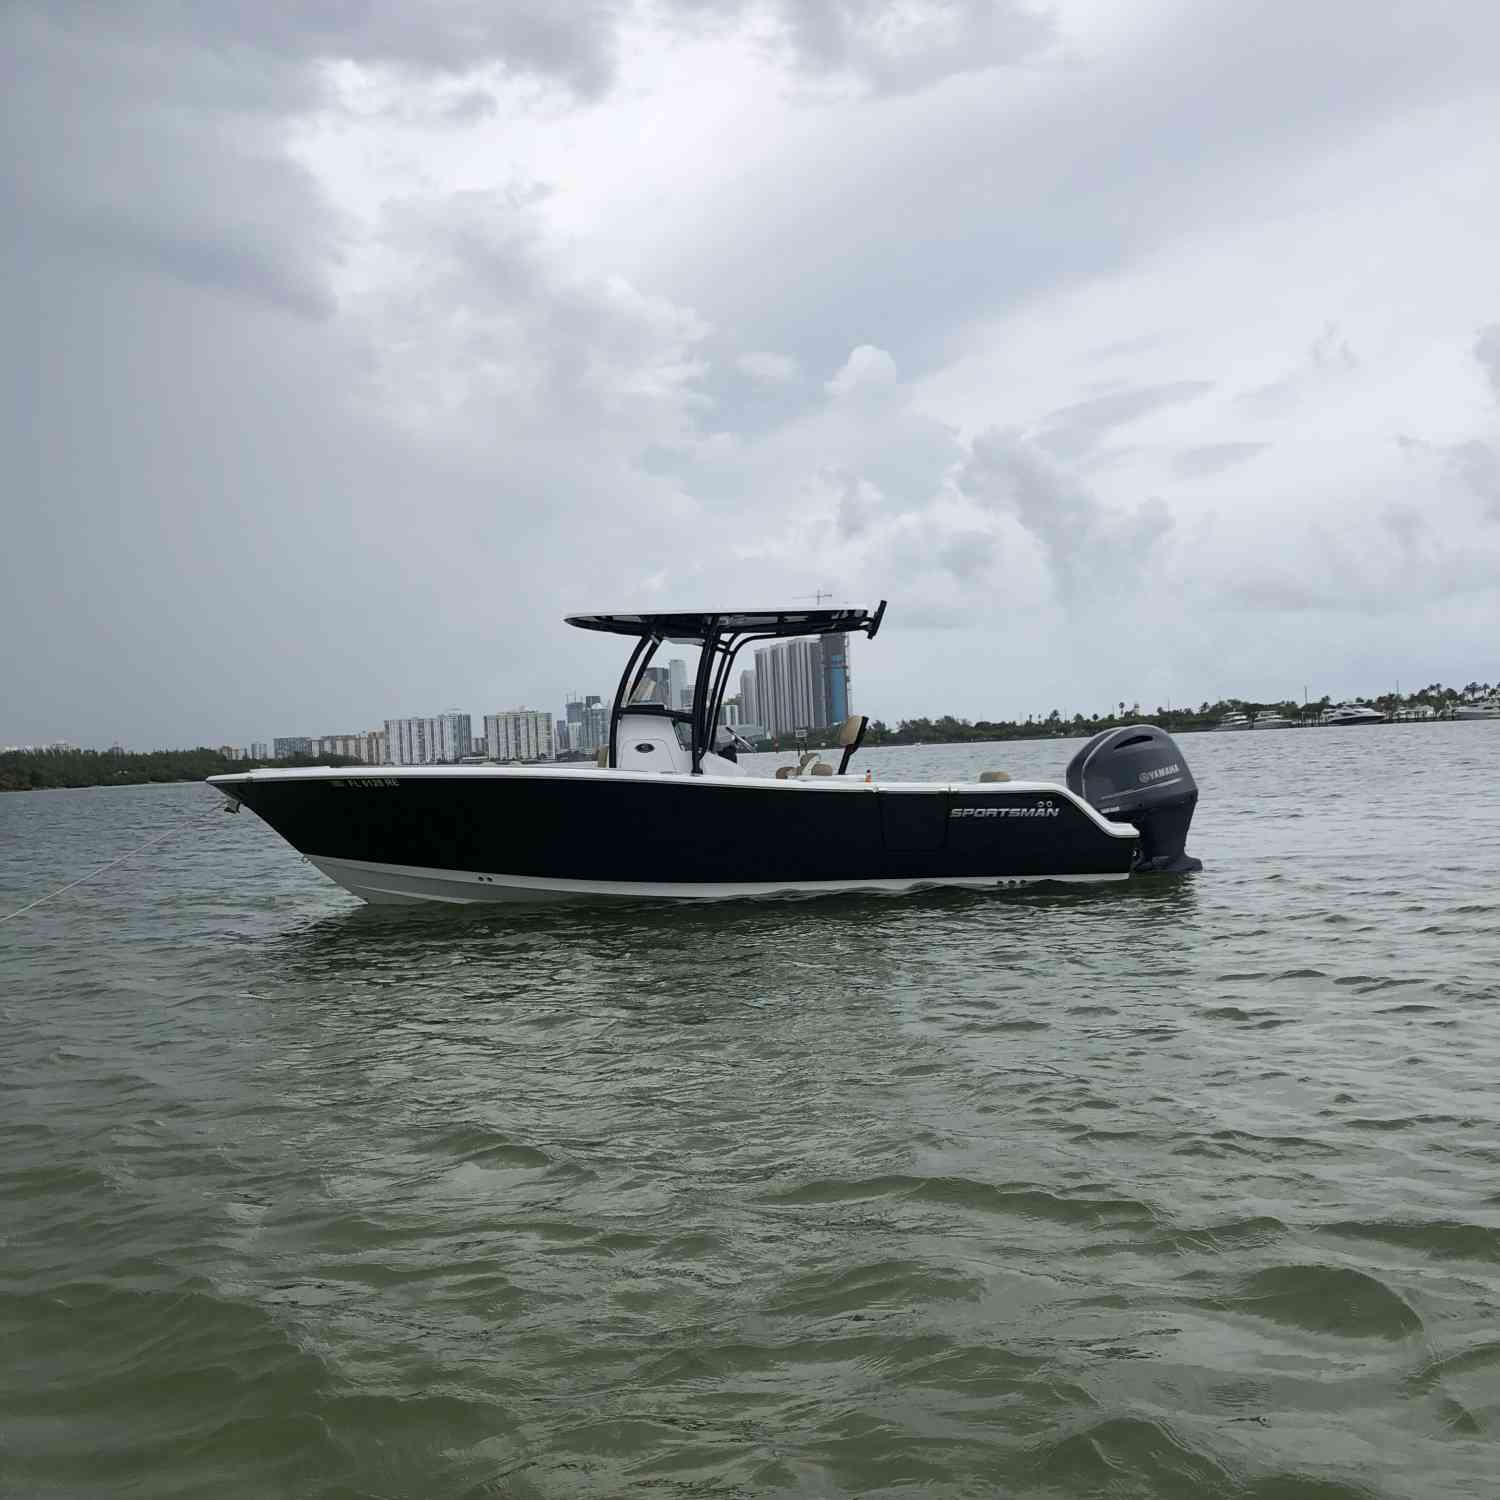 Title: Robert Sportsman 252 - On board their Sportsman Open 252 Center Console - Location: Miami FL. Participating in the Photo Contest #SportsmanAugust2018